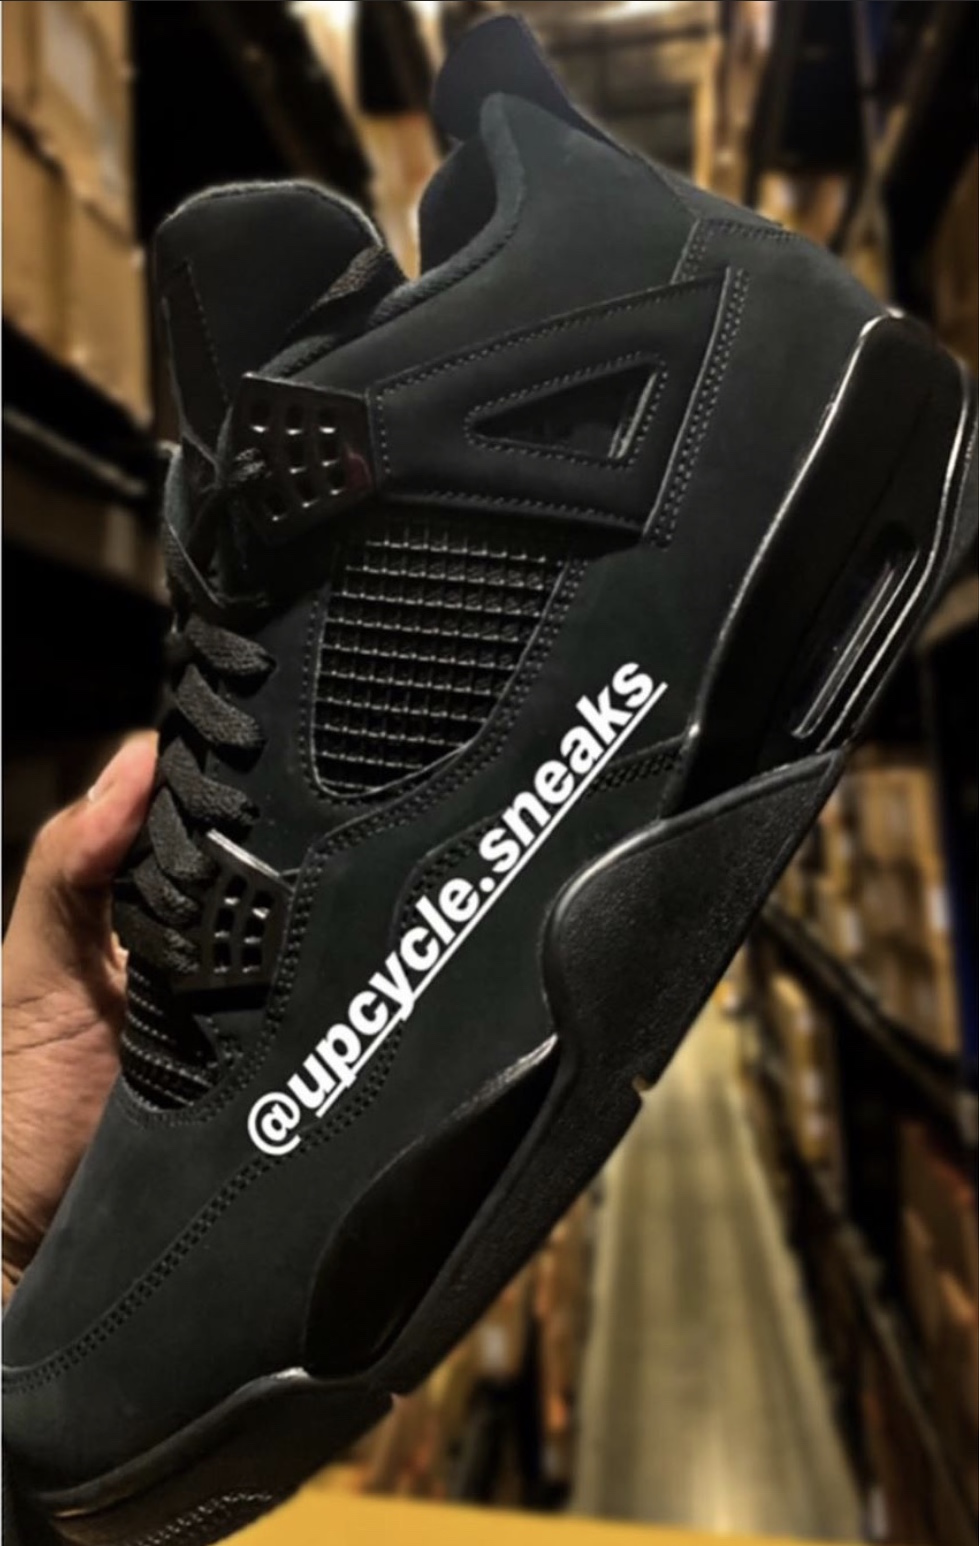 Air Jordan 4 Black Cat 2020 Retro CU1110-010 Release Date